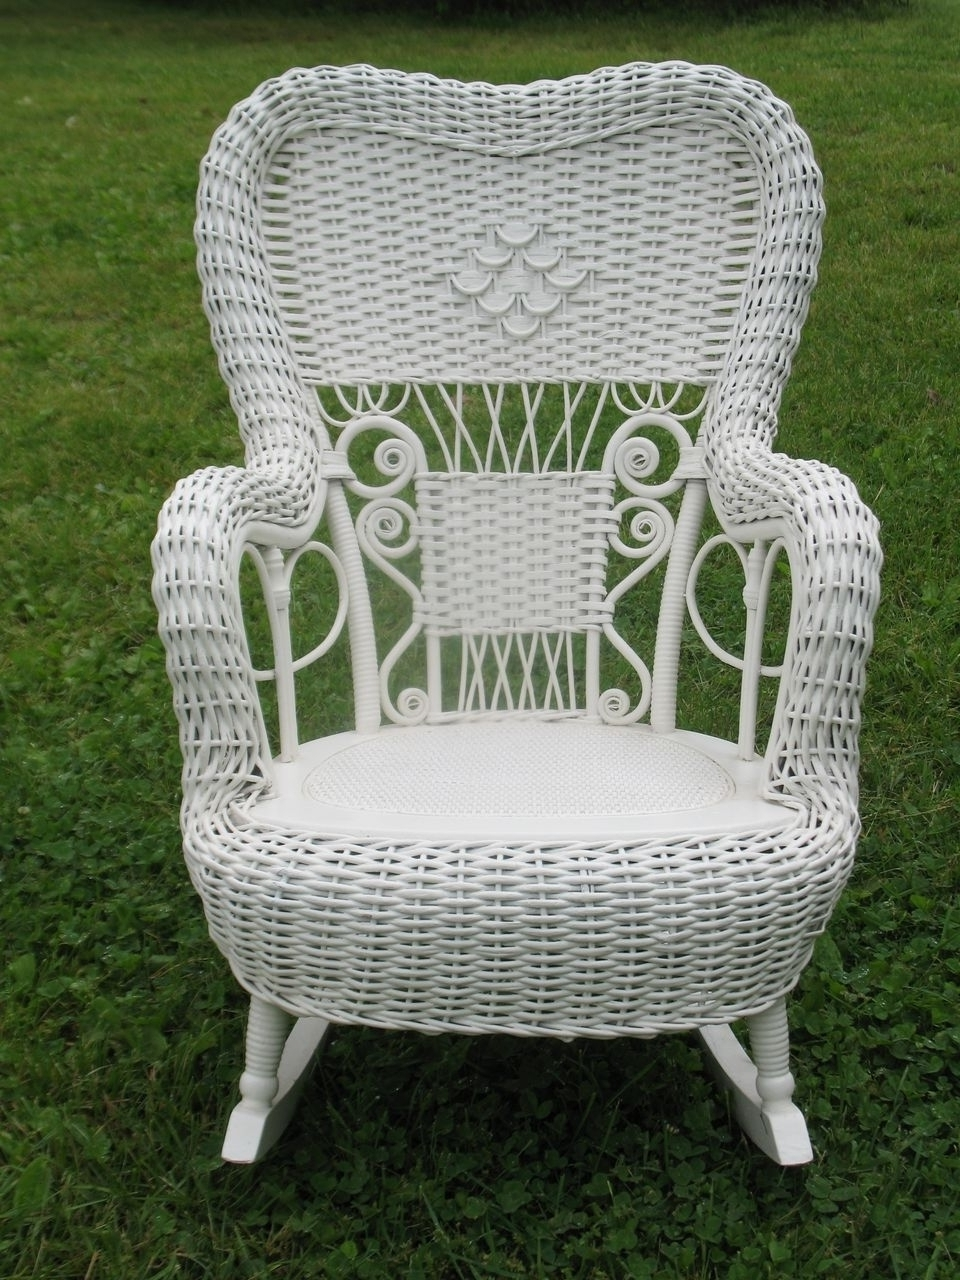 Vintage Wicker Rocking Chairs With Newest Vintage Wicker Rocking Chair (Gallery 4 of 15)